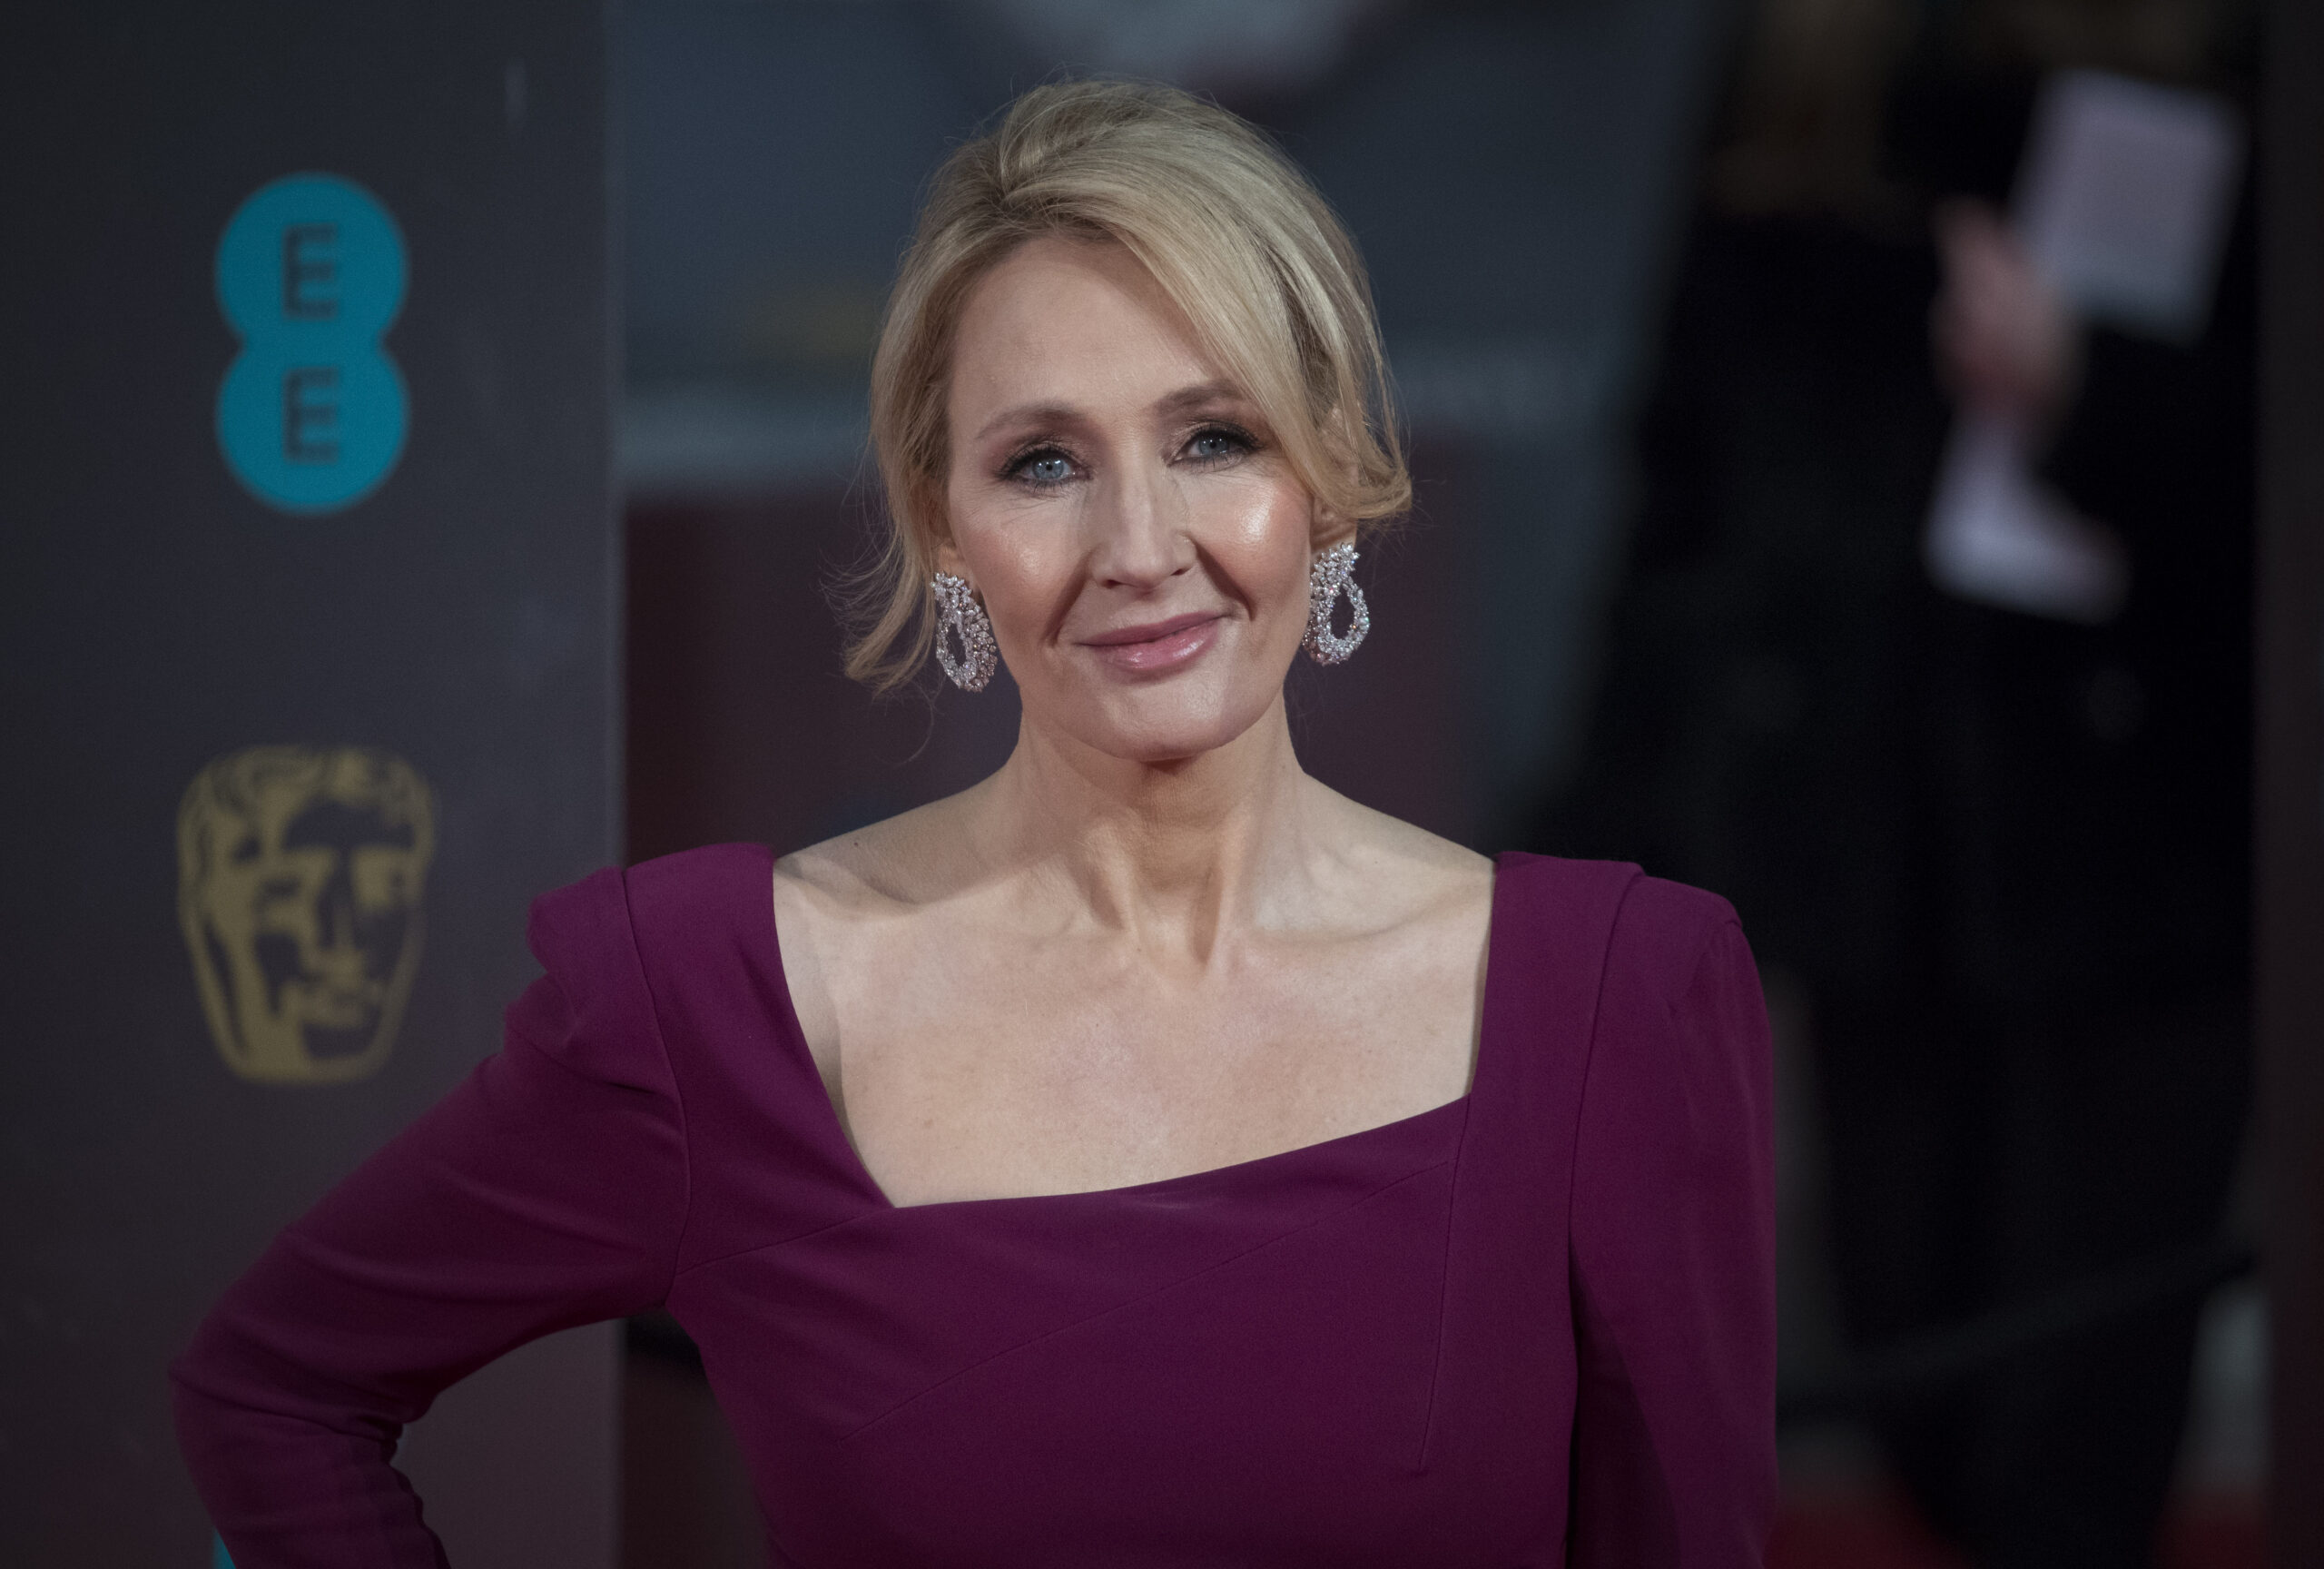 mediaite.com - Leia Idliby - J.K. Rowling, Bari Weiss Sign Letter Calling for Open Debate